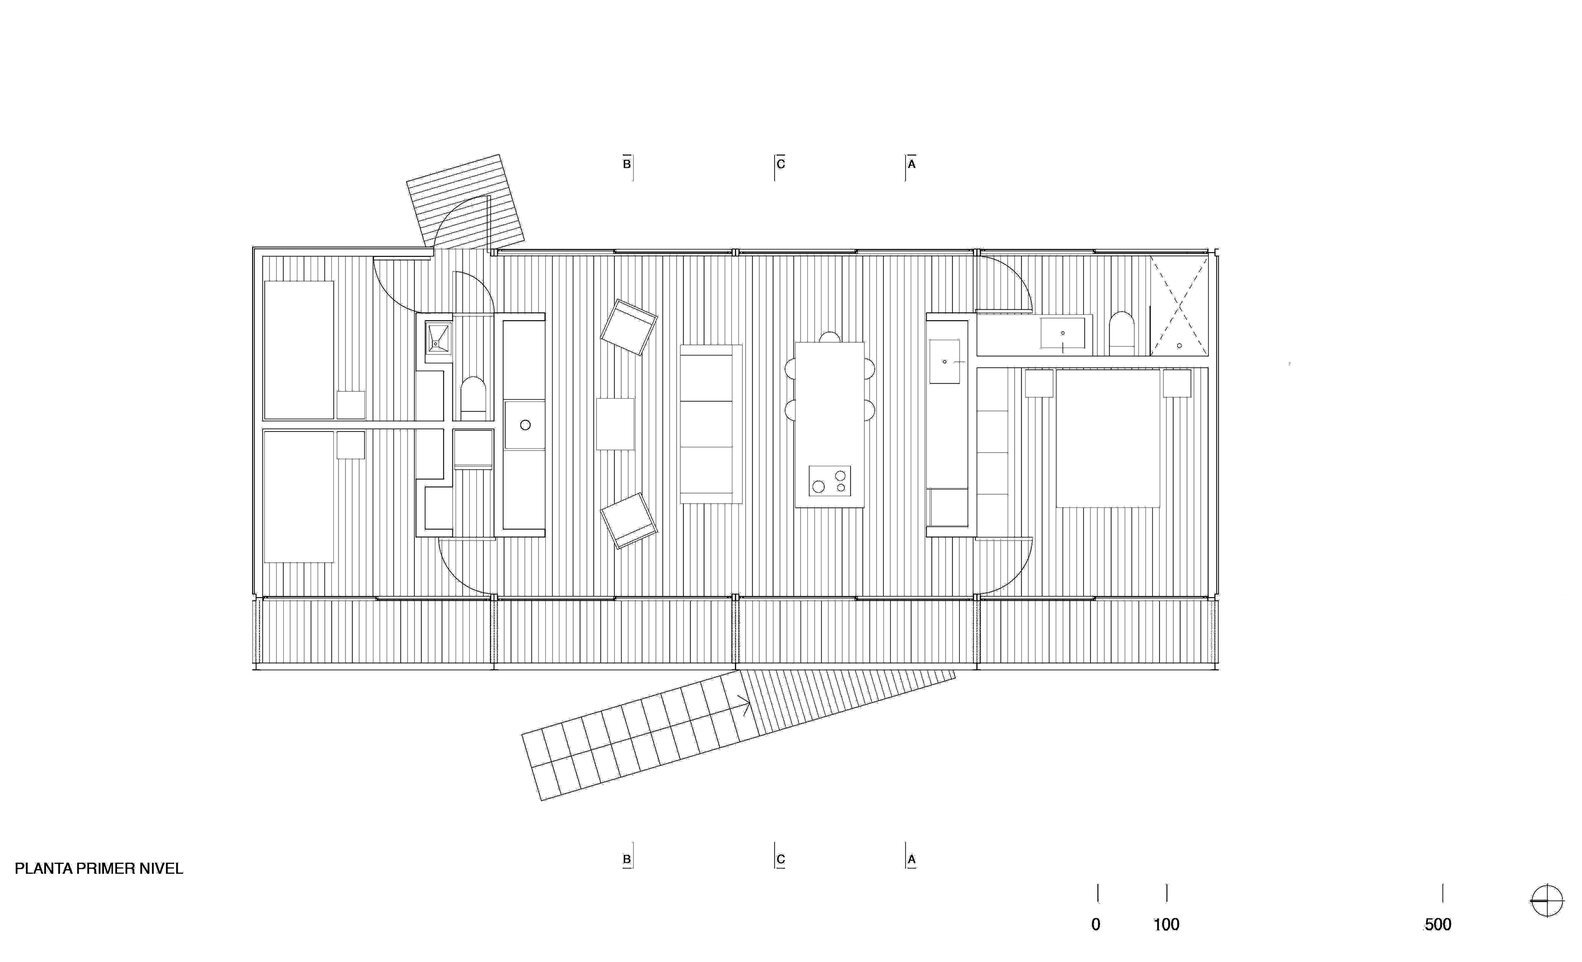 floor plans for prefabricated homes. Remote House  Modular Felipe Assadi Chile Floor Plan Humble Homes A Small Prefab Home Set on the Coast of